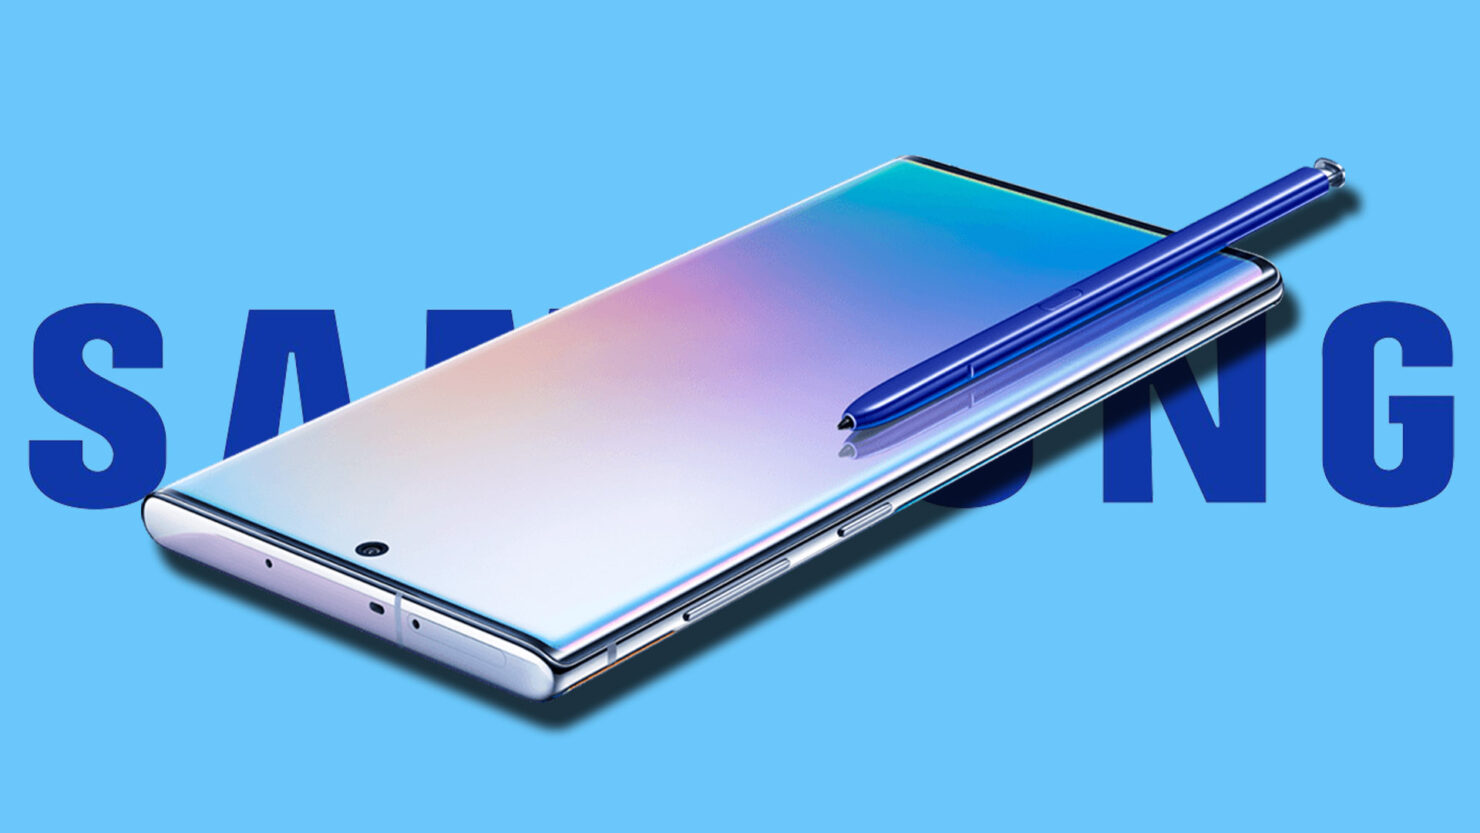 Samsung Galaxy Note Range Has Been Discontinued, According to Fresh Tweet From Tipster